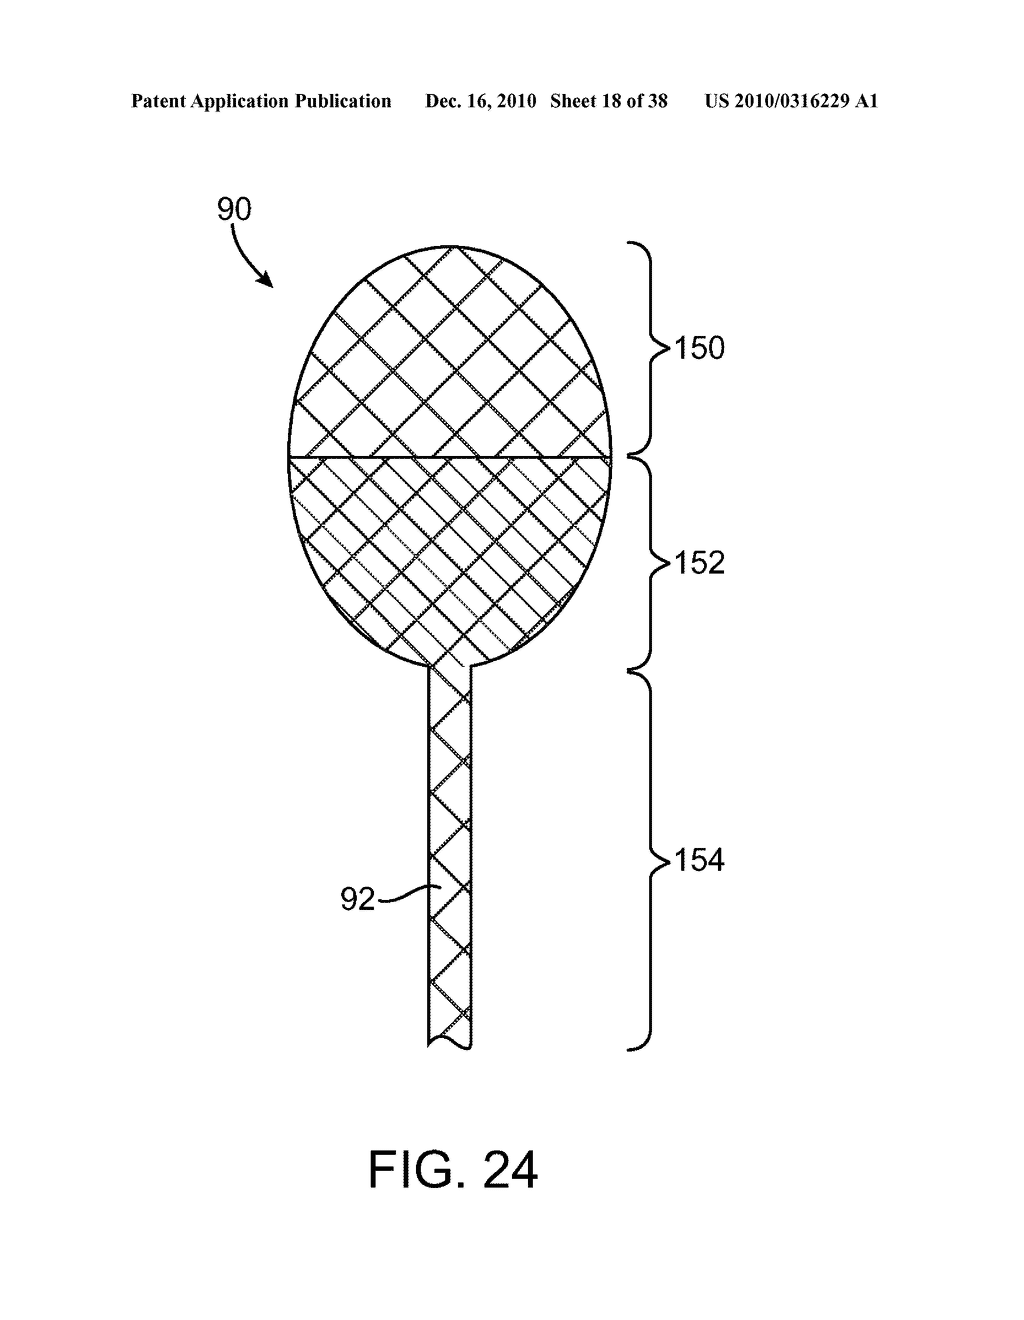 ELECTRONIC DEVICE ACCESSORIES FORMED FROM INTERTWINED FIBERS - diagram, schematic, and image 19